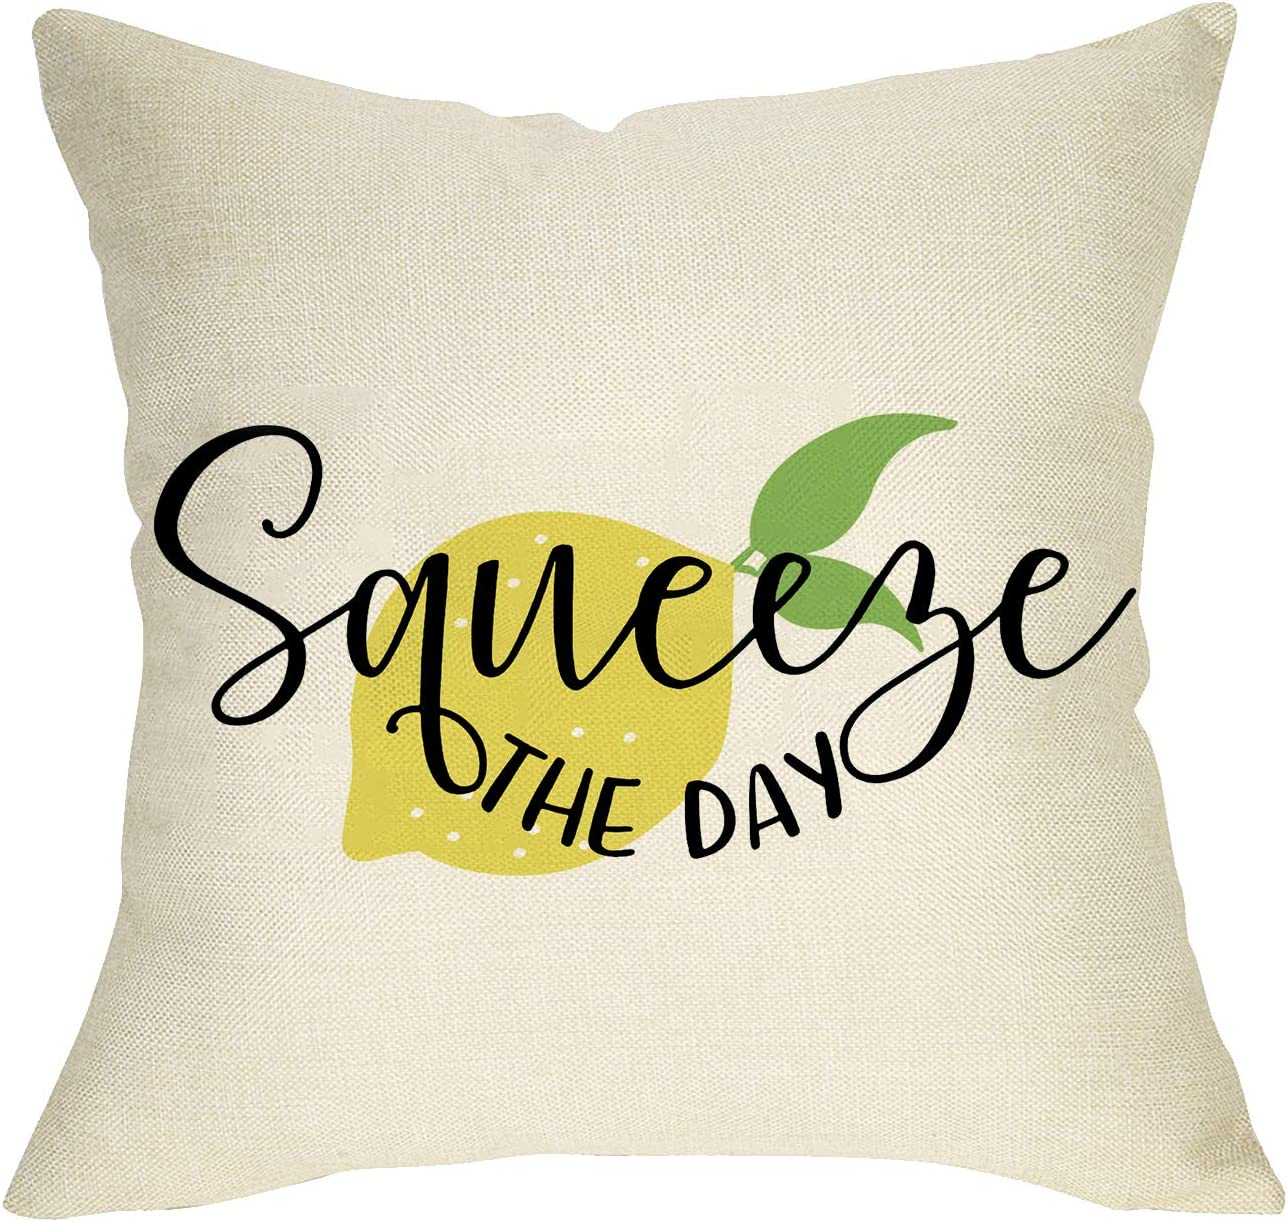 Softxpp Squeeze The Day Summer Throw Pillow Cover, Decorative Farmhouse Lemon Pillow Case Decor Seasonal Square Cushion Cover Spring Home Decorations for Sofa Couch 18'' x 18'' Cotton Linen